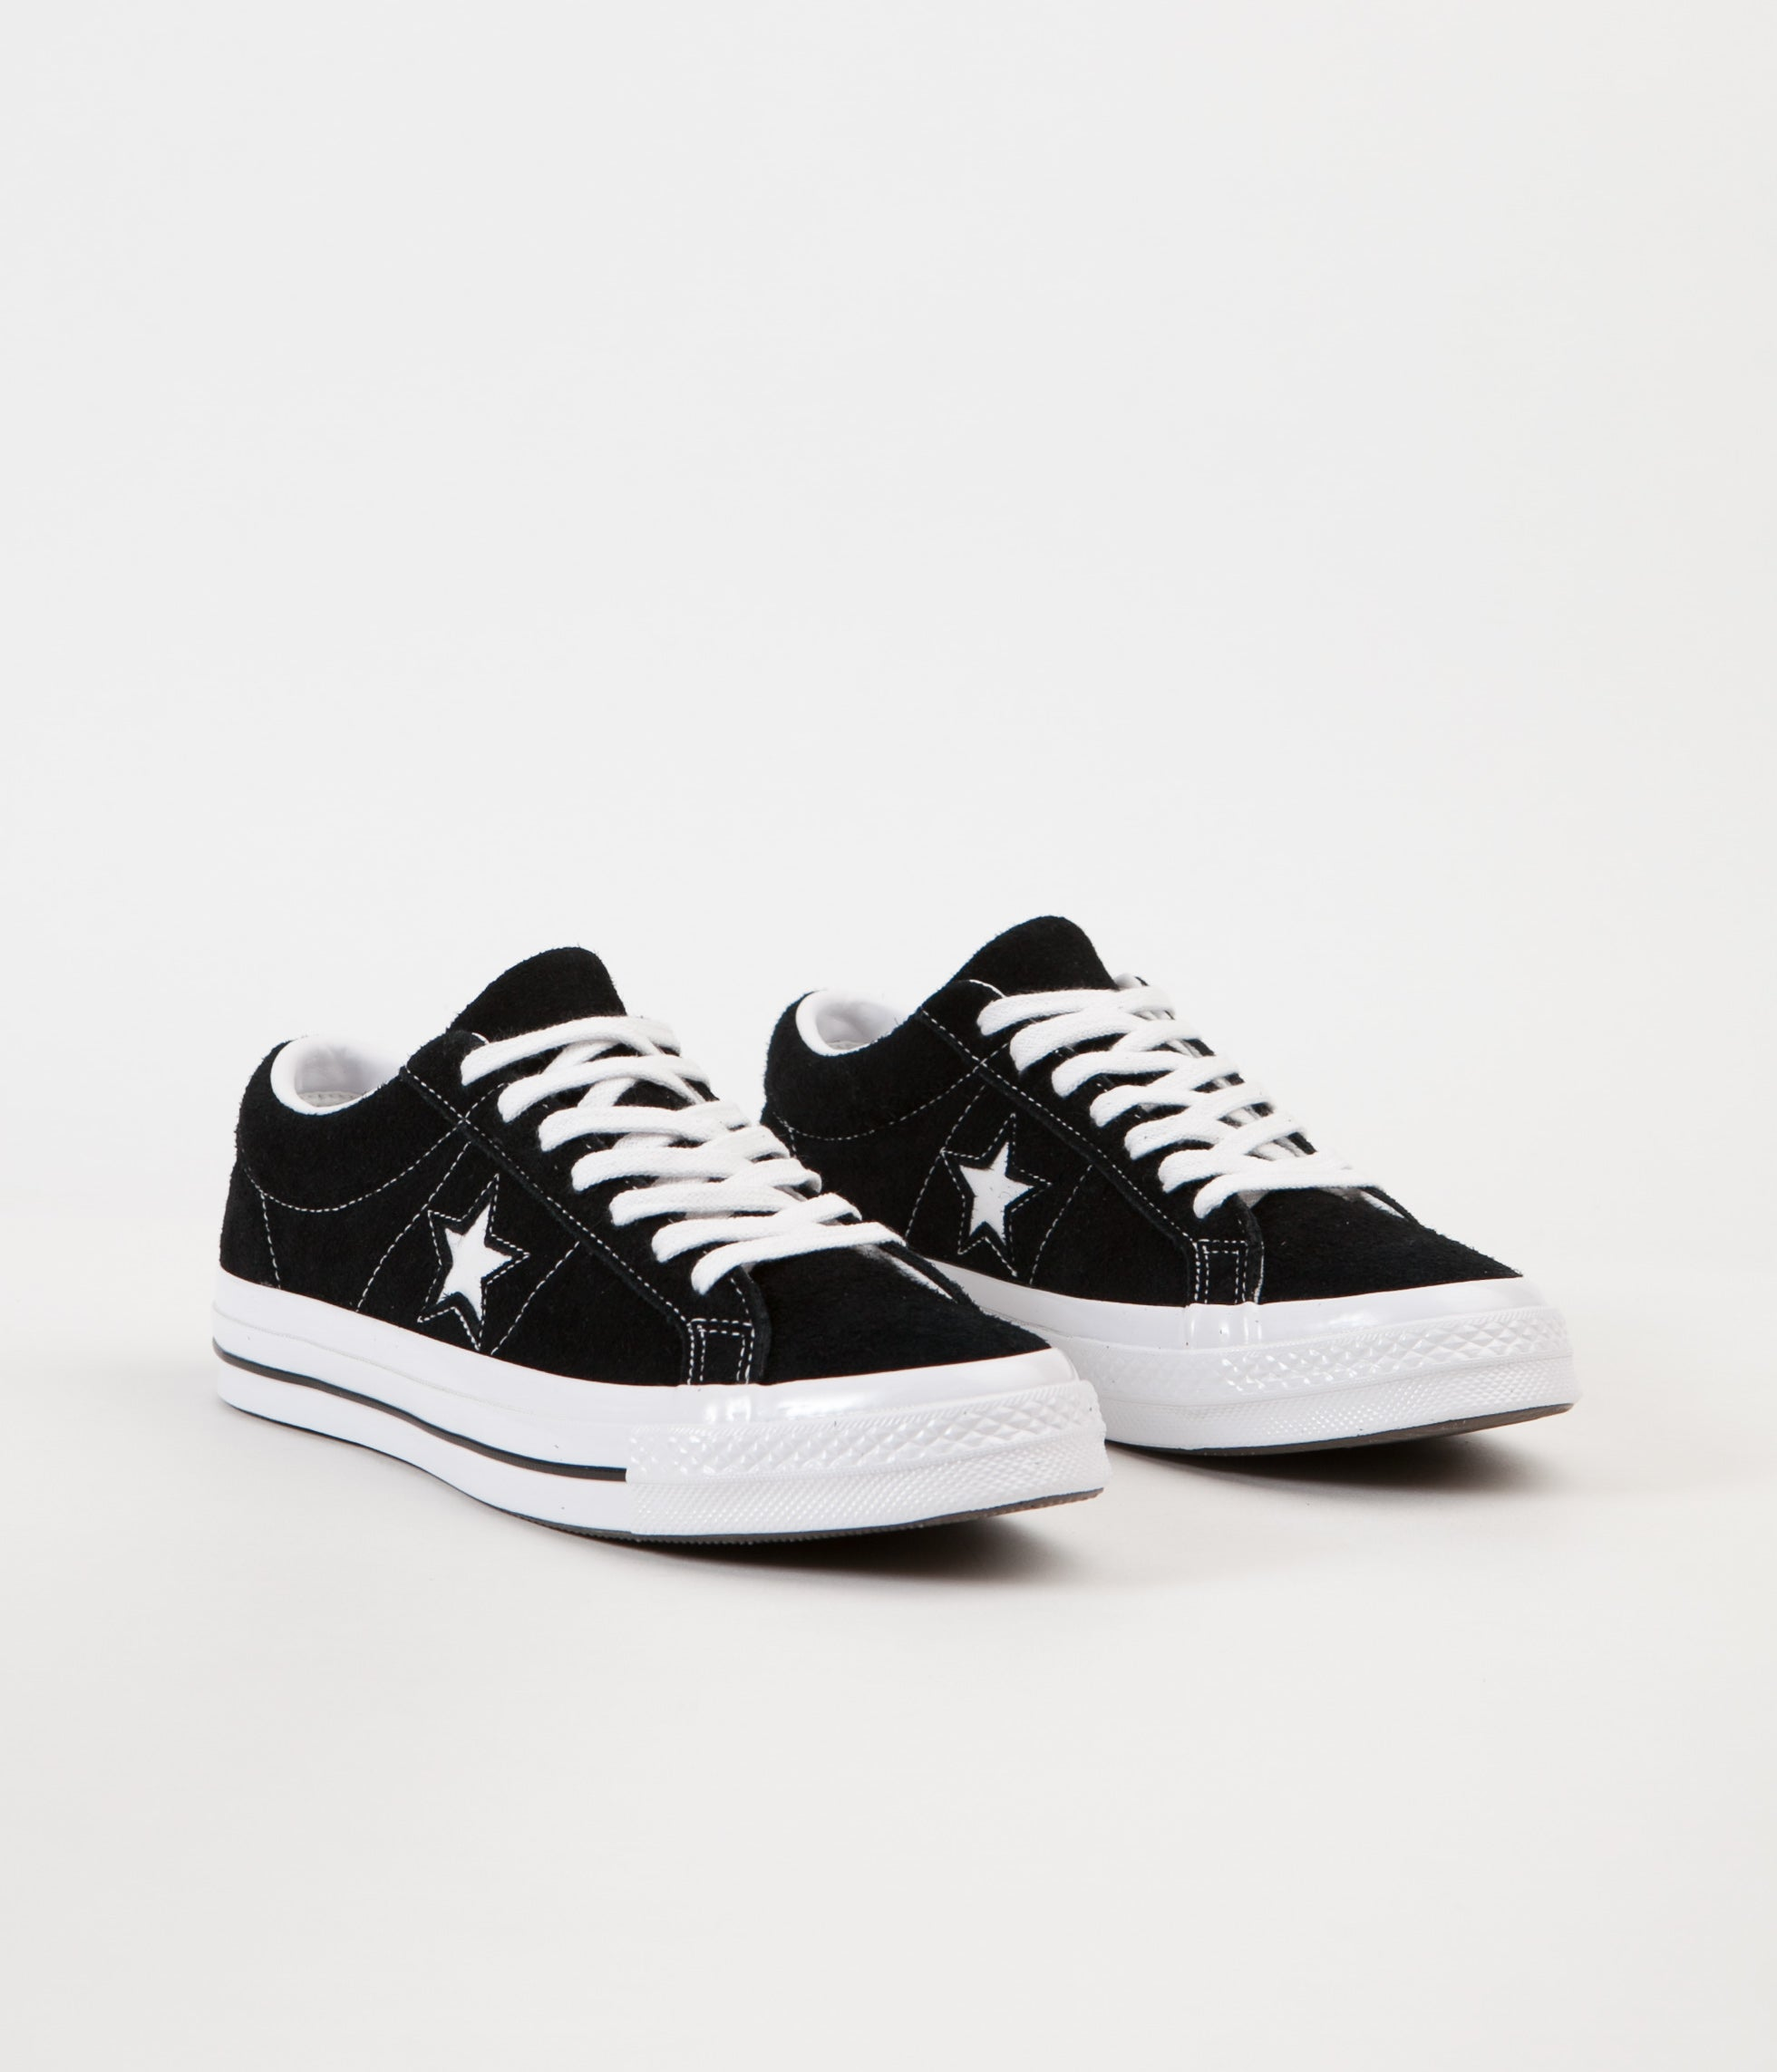 6ab59befaf0b0f ... Converse One Star Ox Shoes - Black   White   White ...